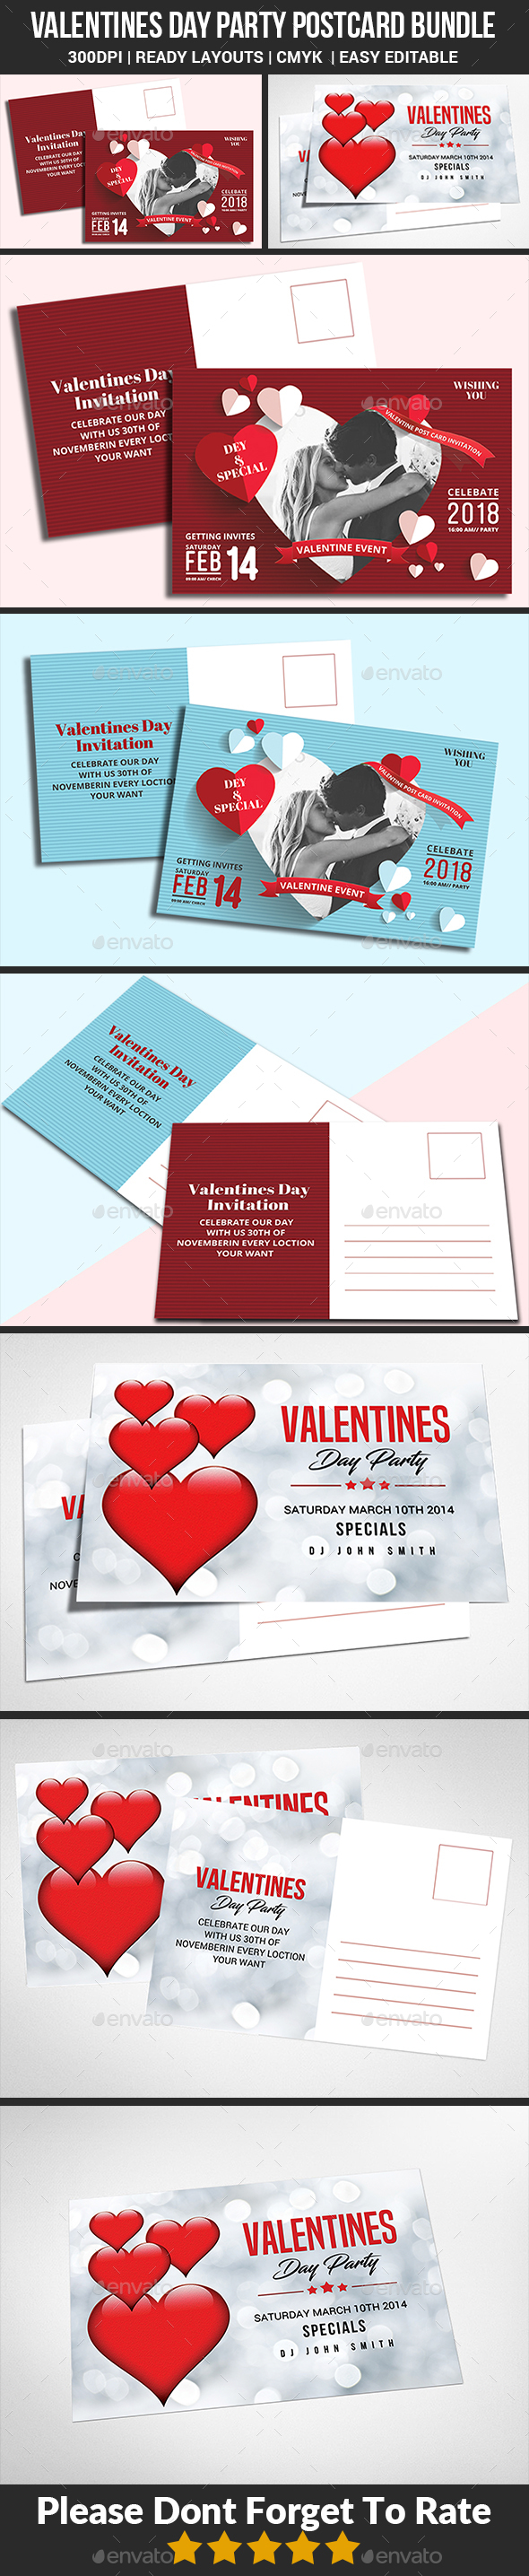 Valentine Post Card Bundle - Cards & Invites Print Templates